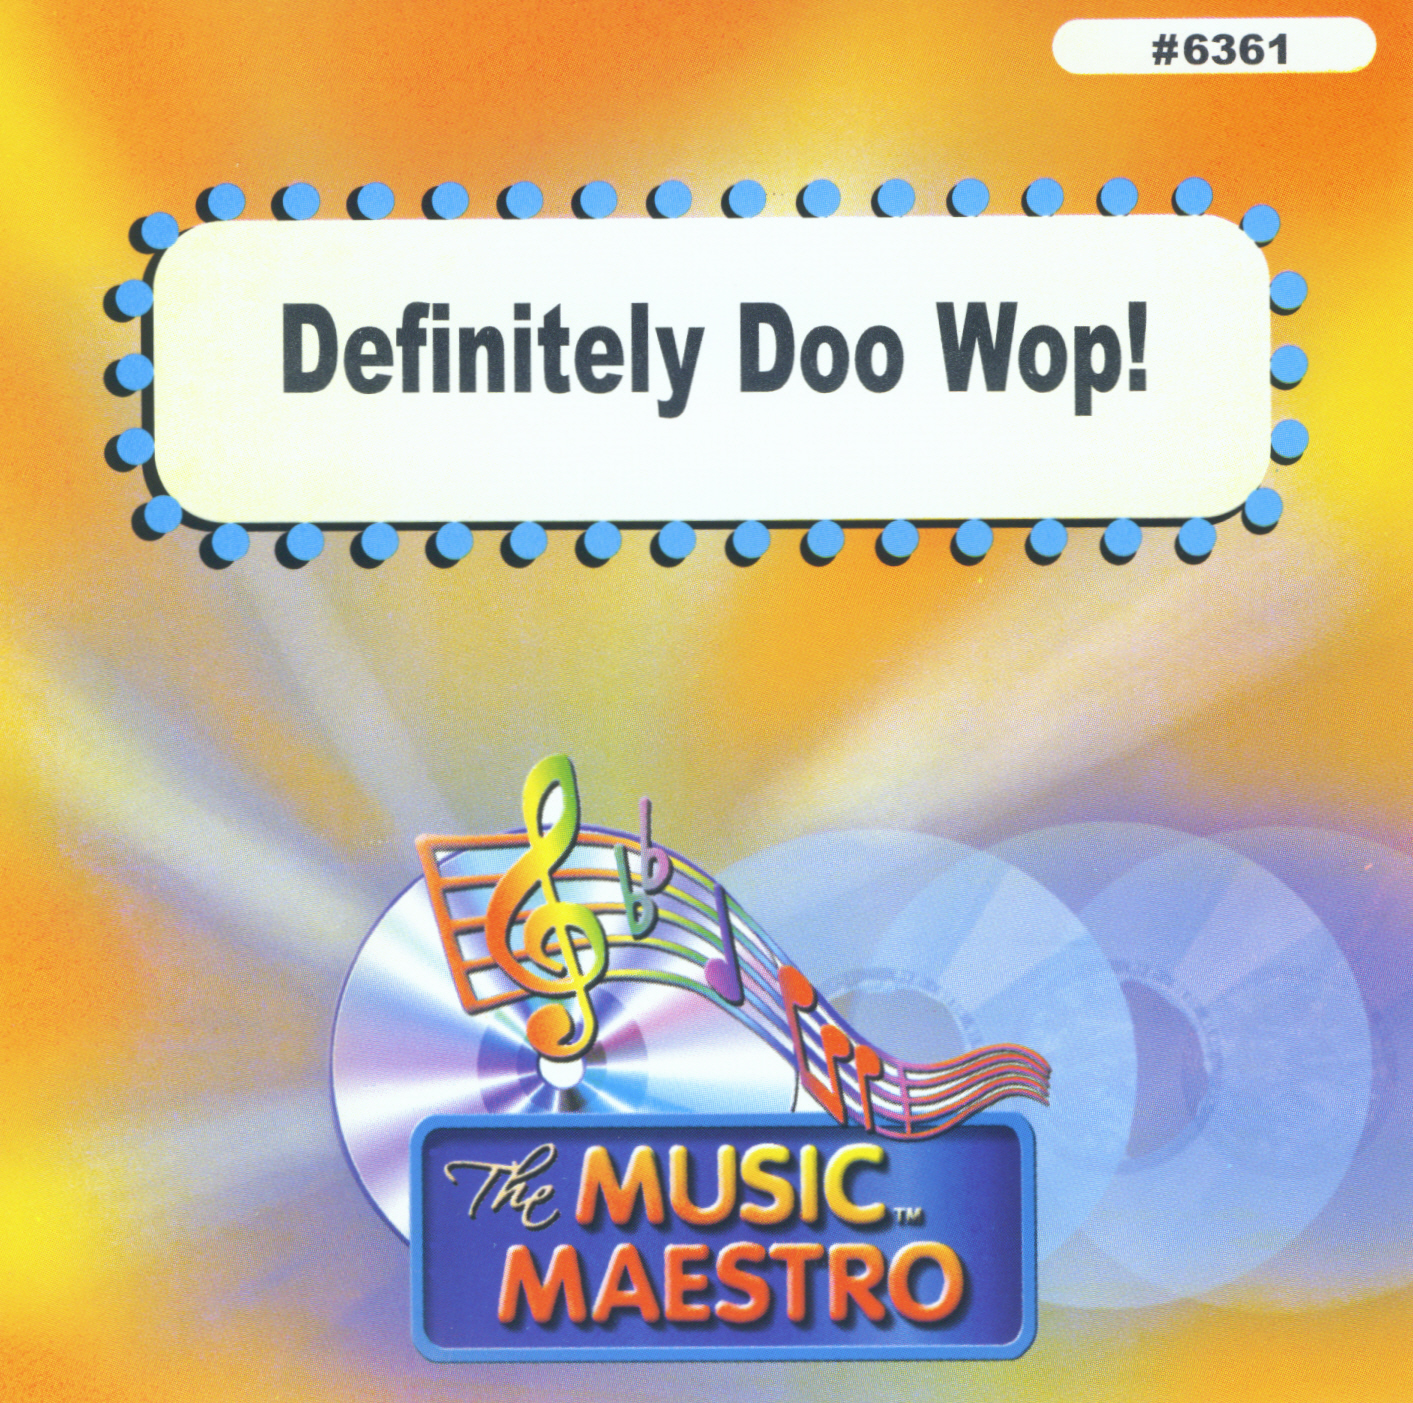 DEFINITELY DOO WOP!     Music Maestro  MM 6361